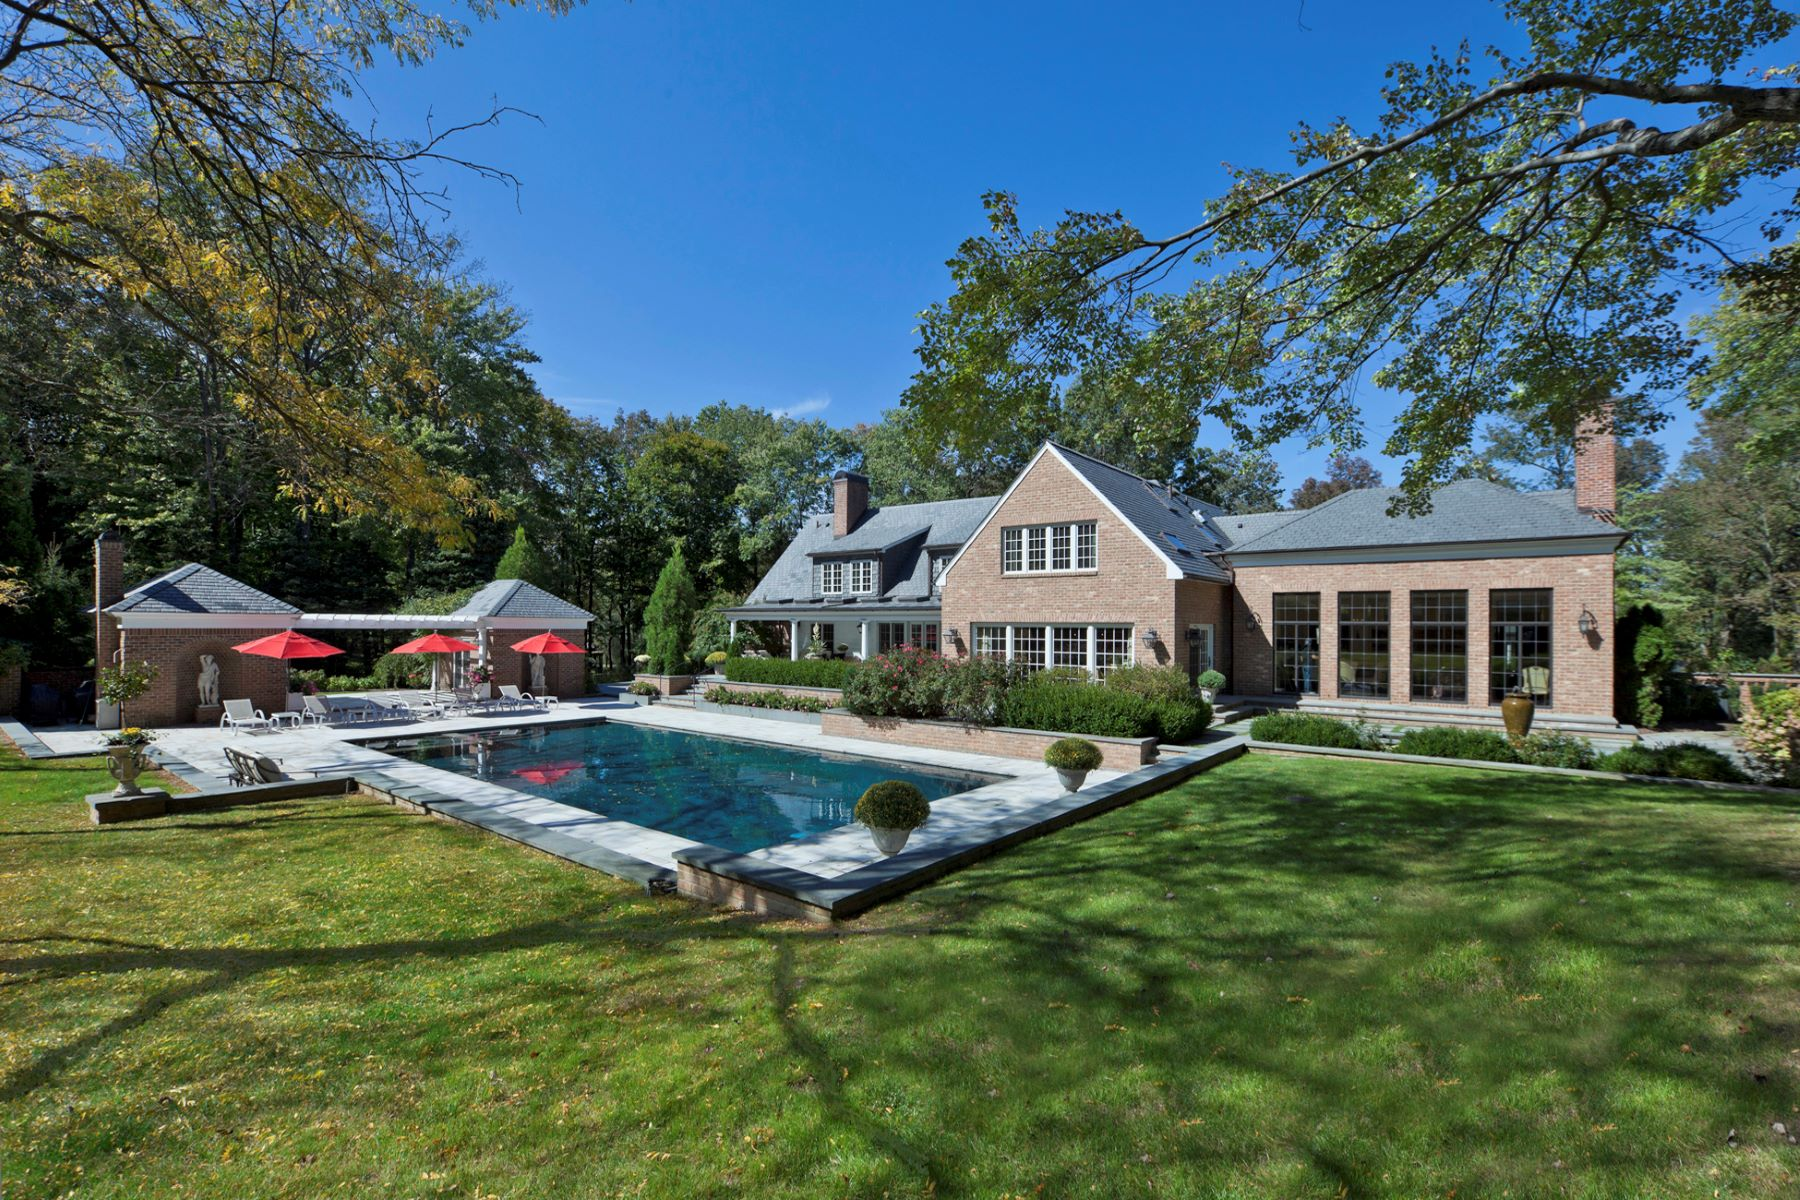 Single Family Home for Sale at An Old World Estate Made for Modern Entertaining 5279 Province Line Road Princeton, 08540 United States